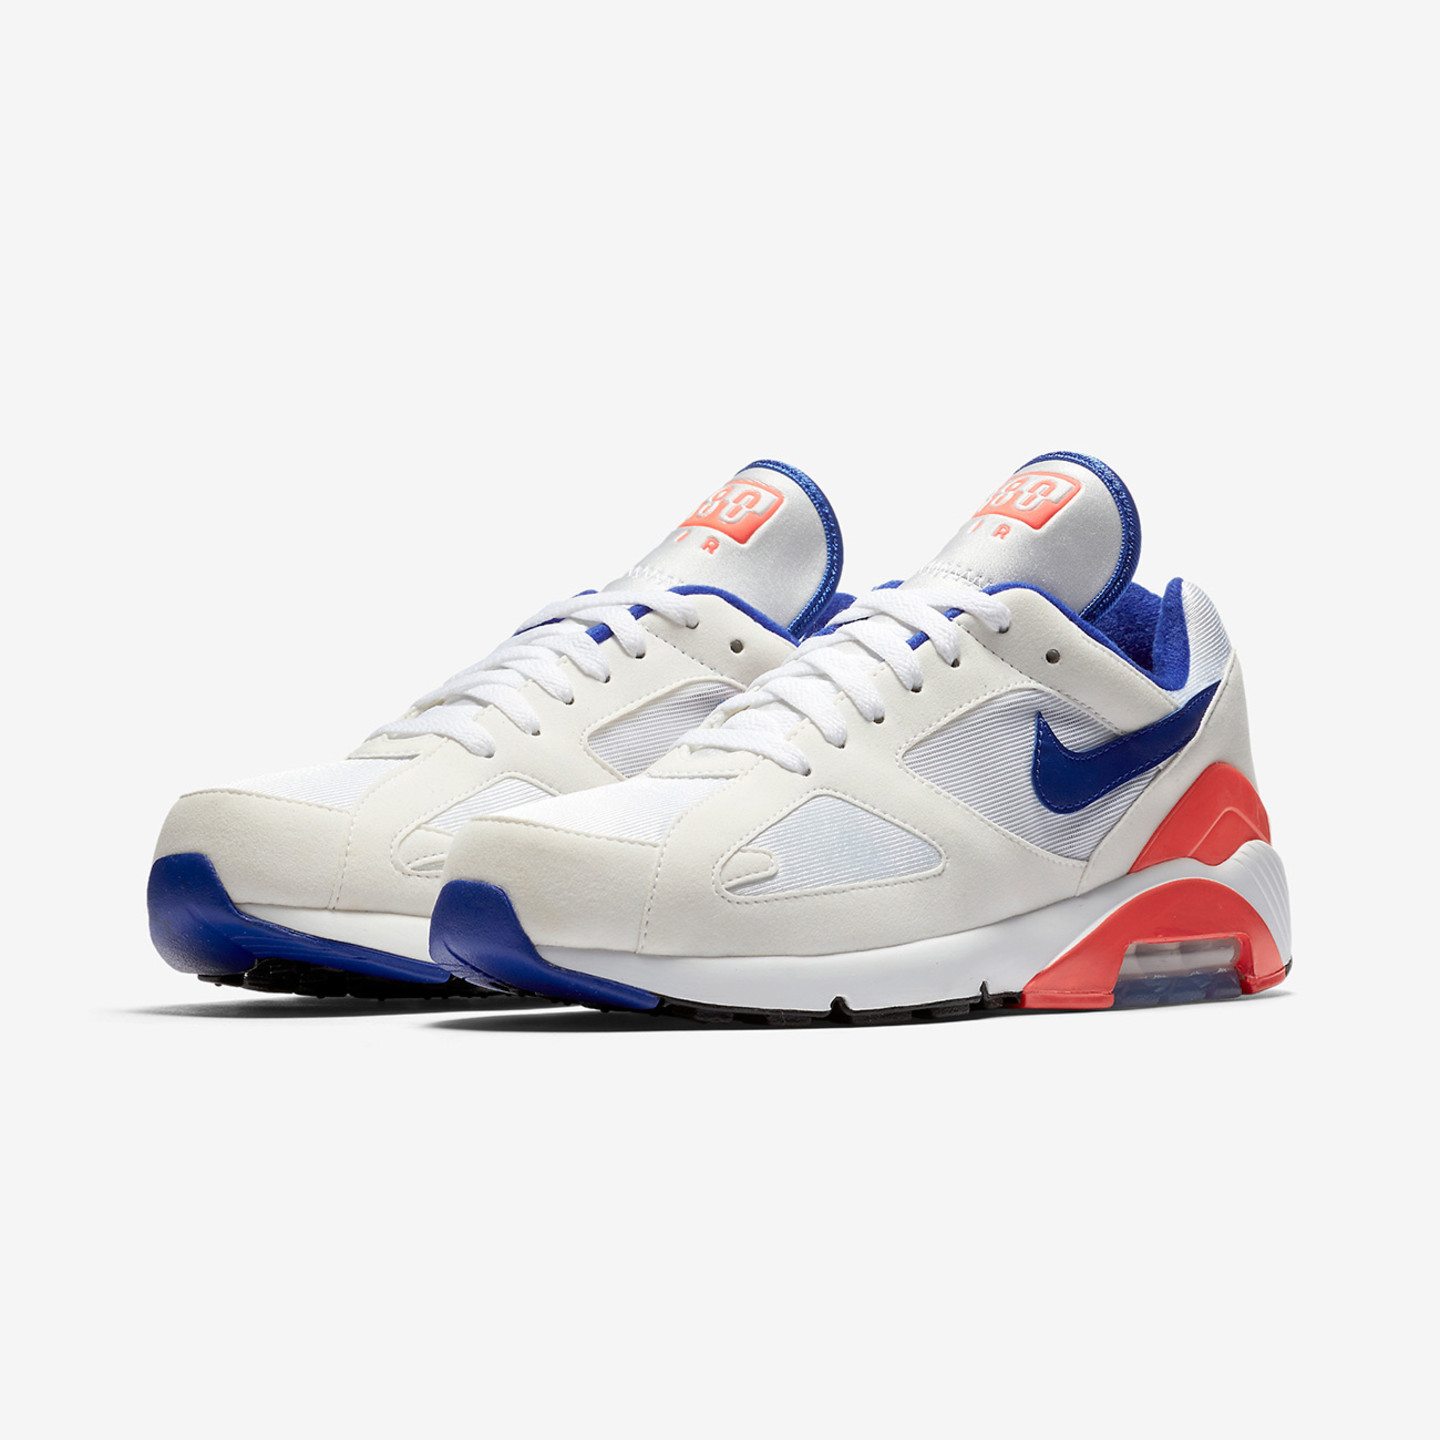 Nike Air Max 180 OG 'Ultramarine' White / Ultramarine / Solar Red 615287-100